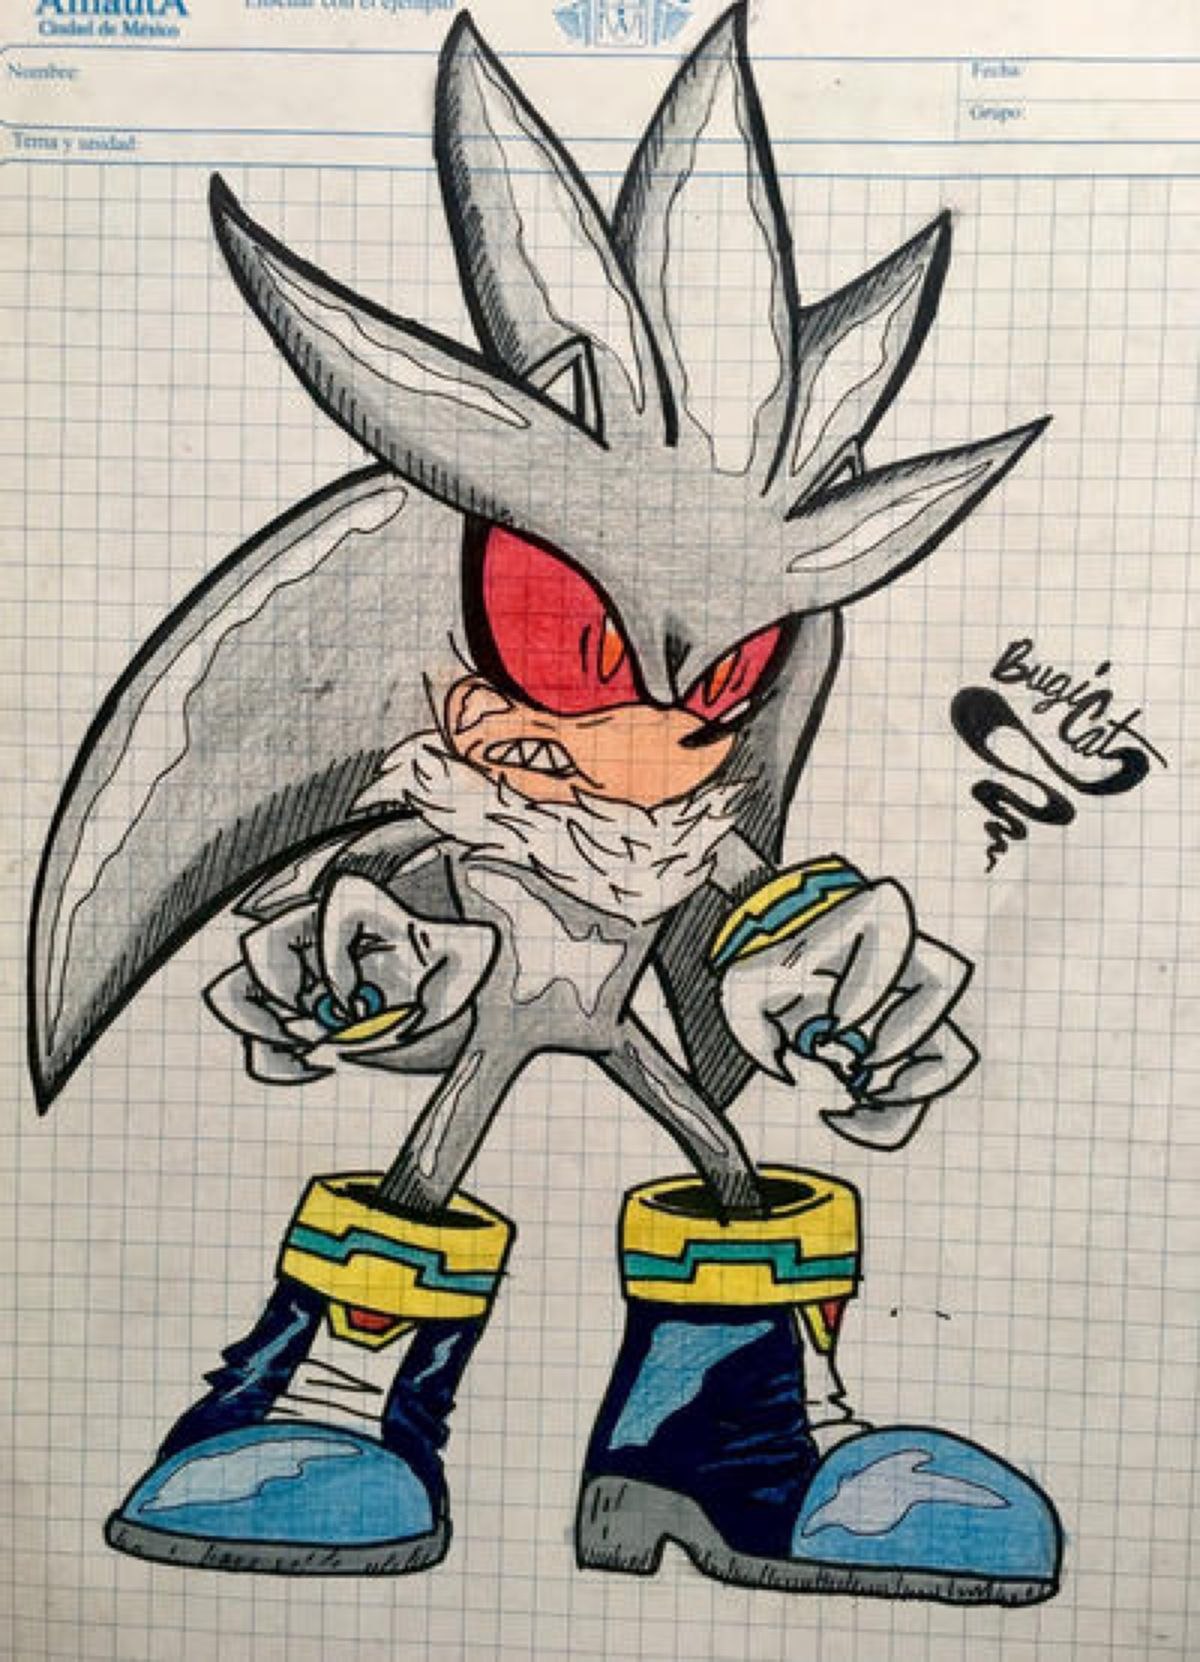 Silver The Hedgehog Zombot By Bugicat On Deviantart Silver The Hedgehog Hedgehog Sonic The Hedgehog